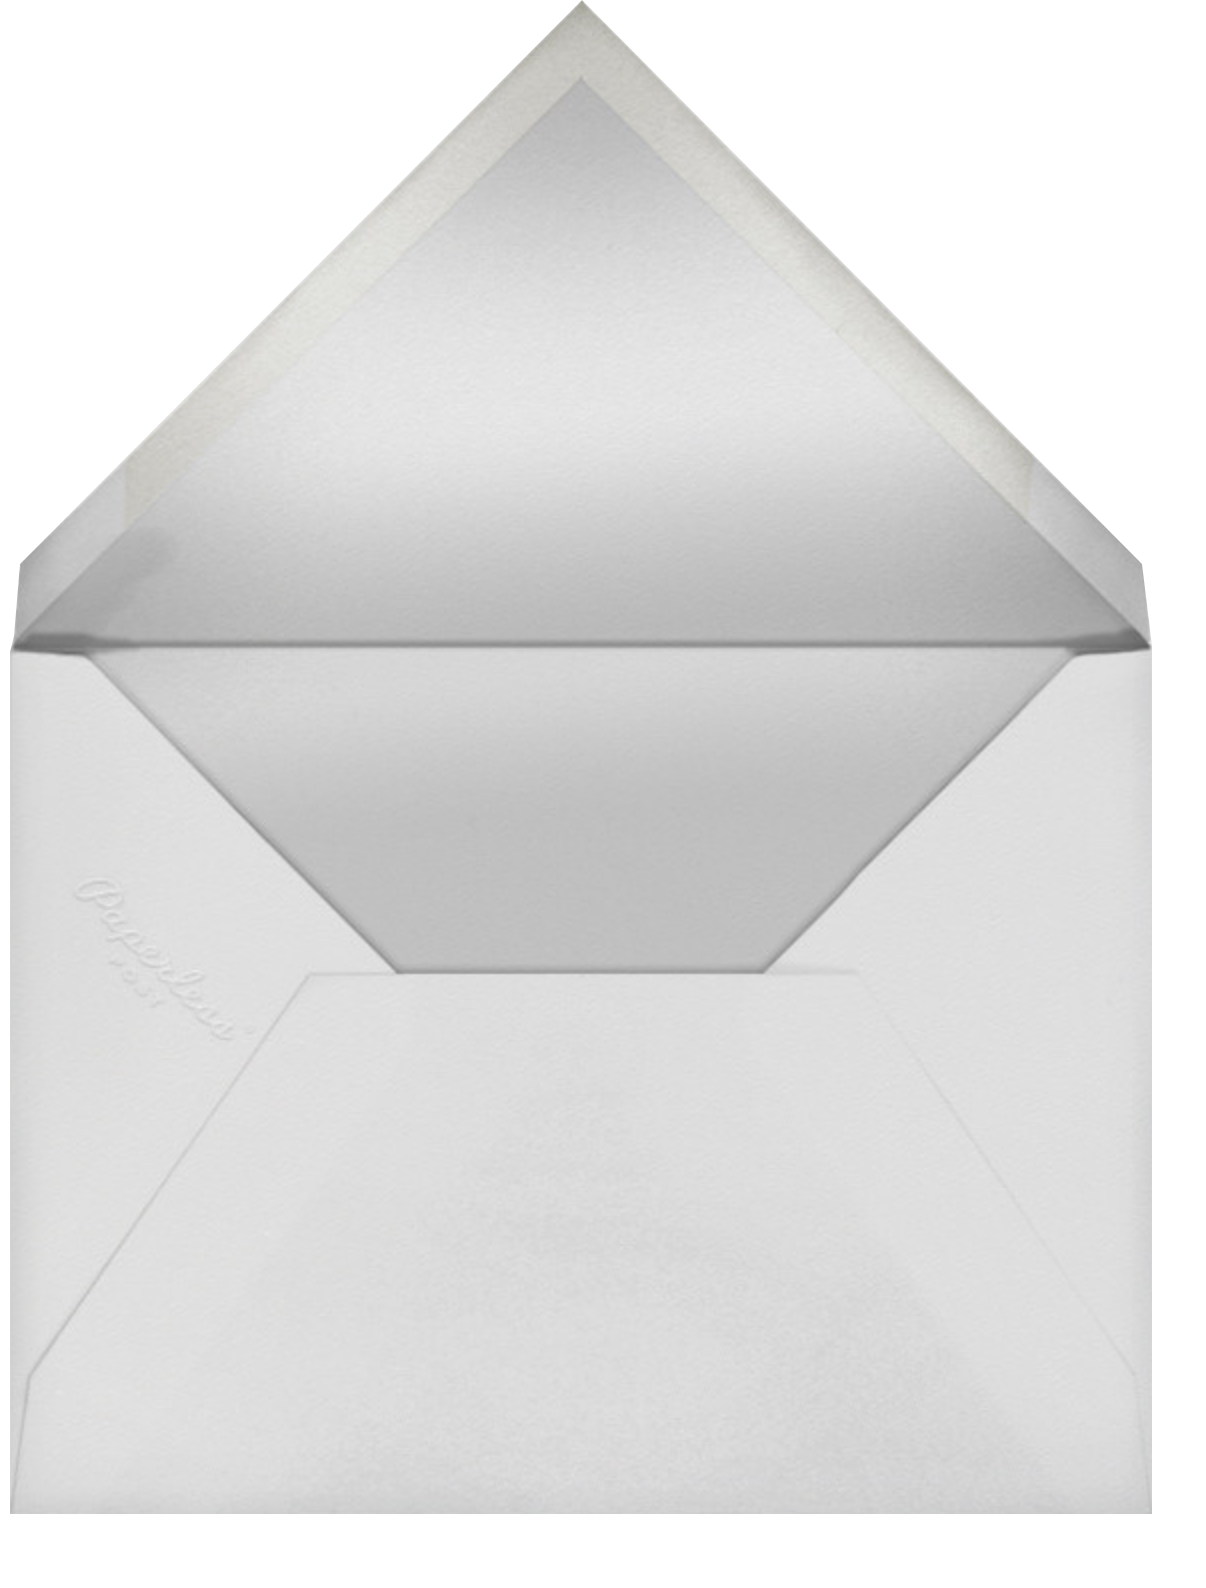 The Look of Love - Paperless Post - Valentine's Day - envelope back